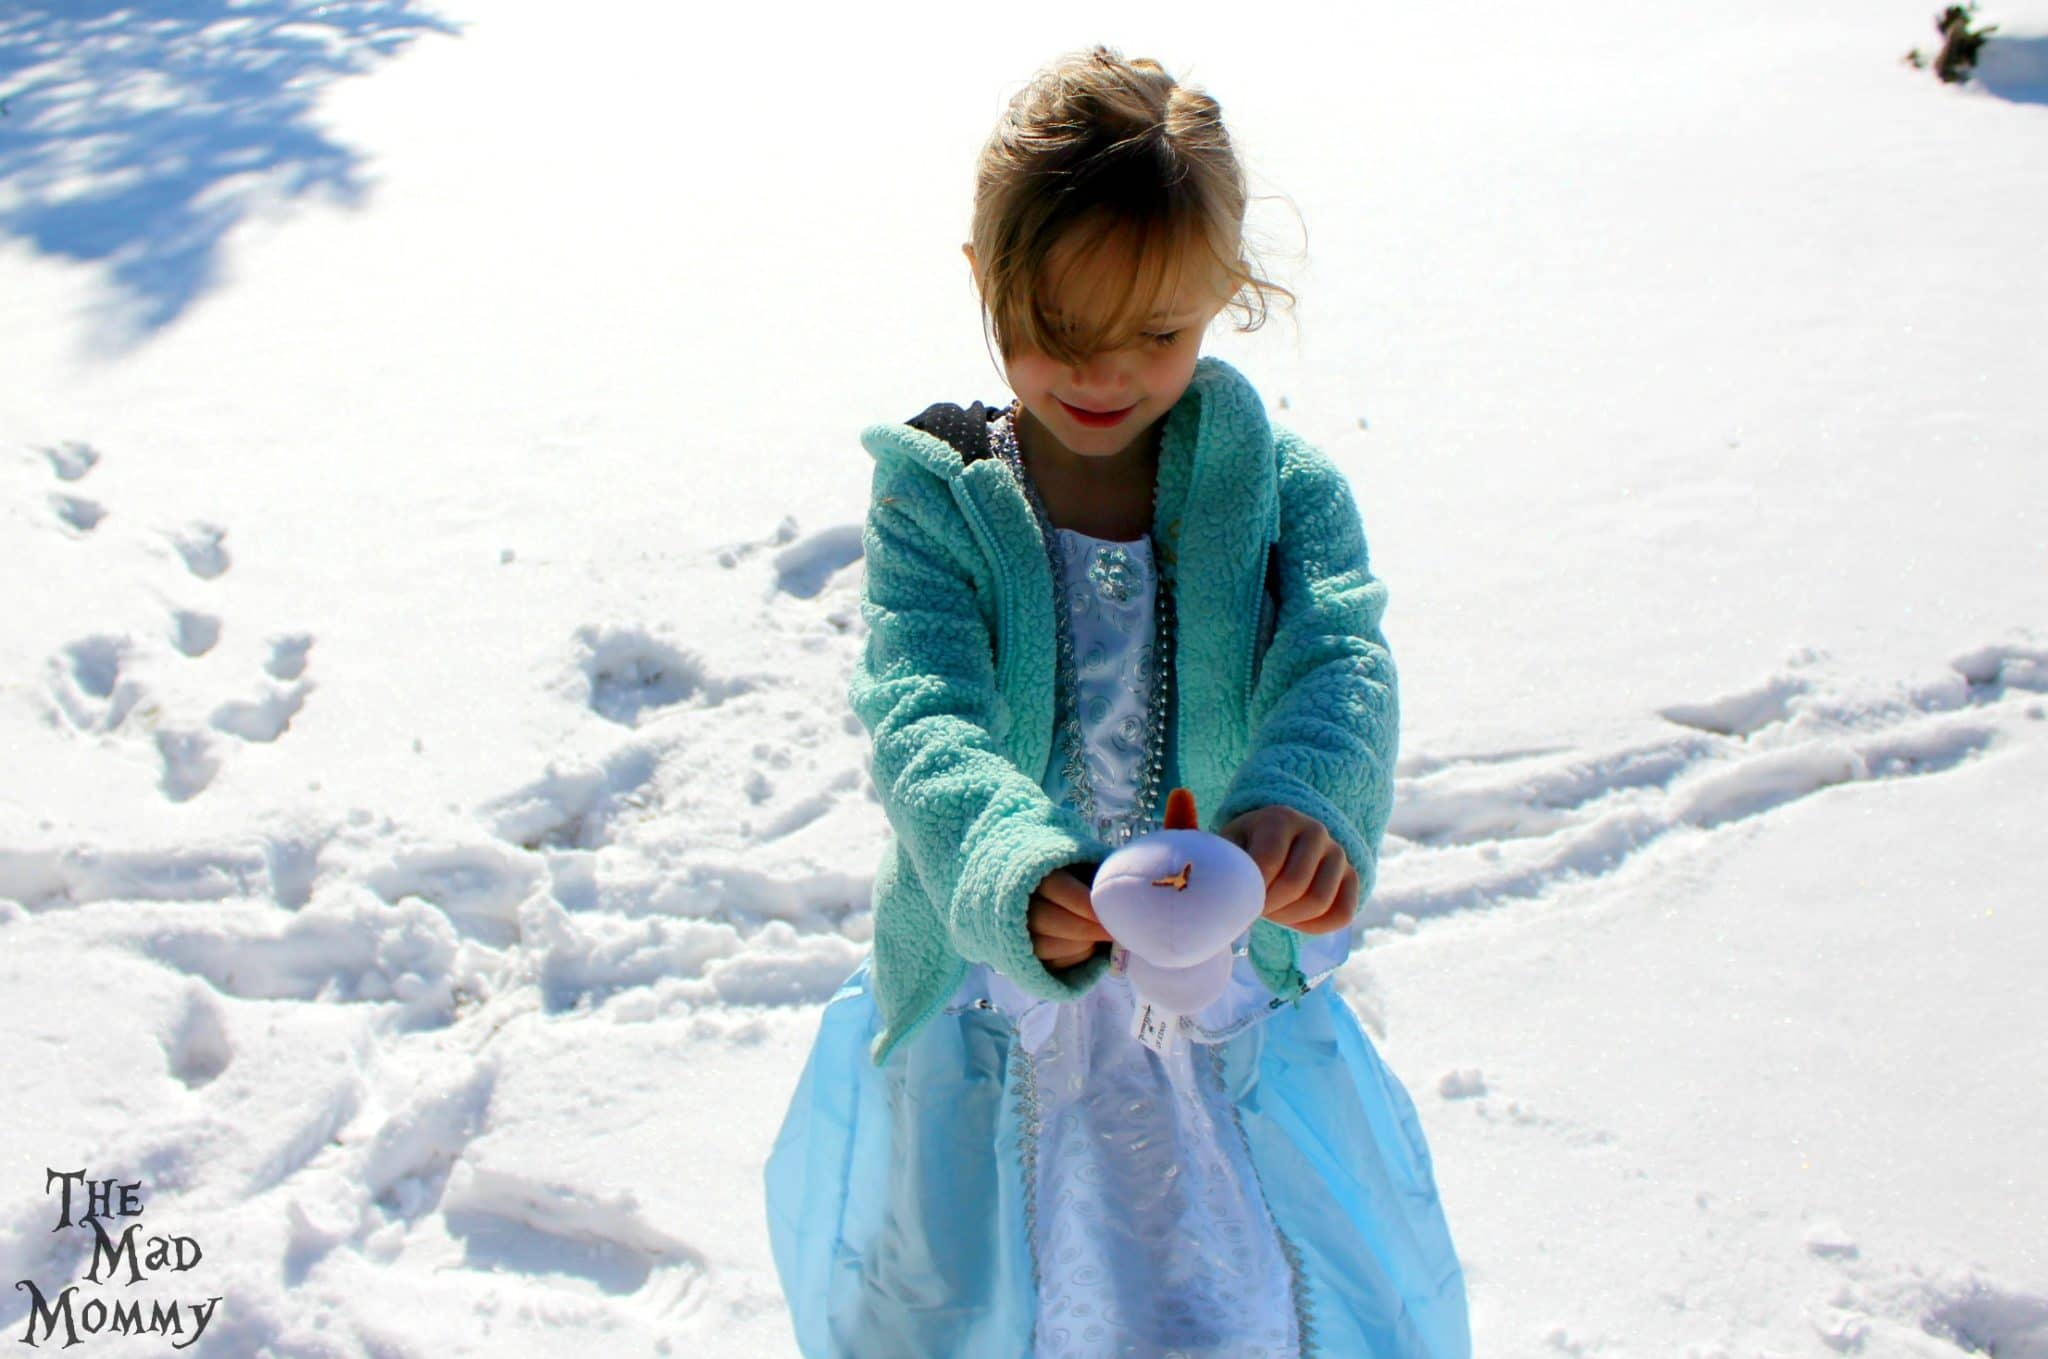 Dancing with Olaf in her washable and wearable Little Adventures Cinderella inspired dress.